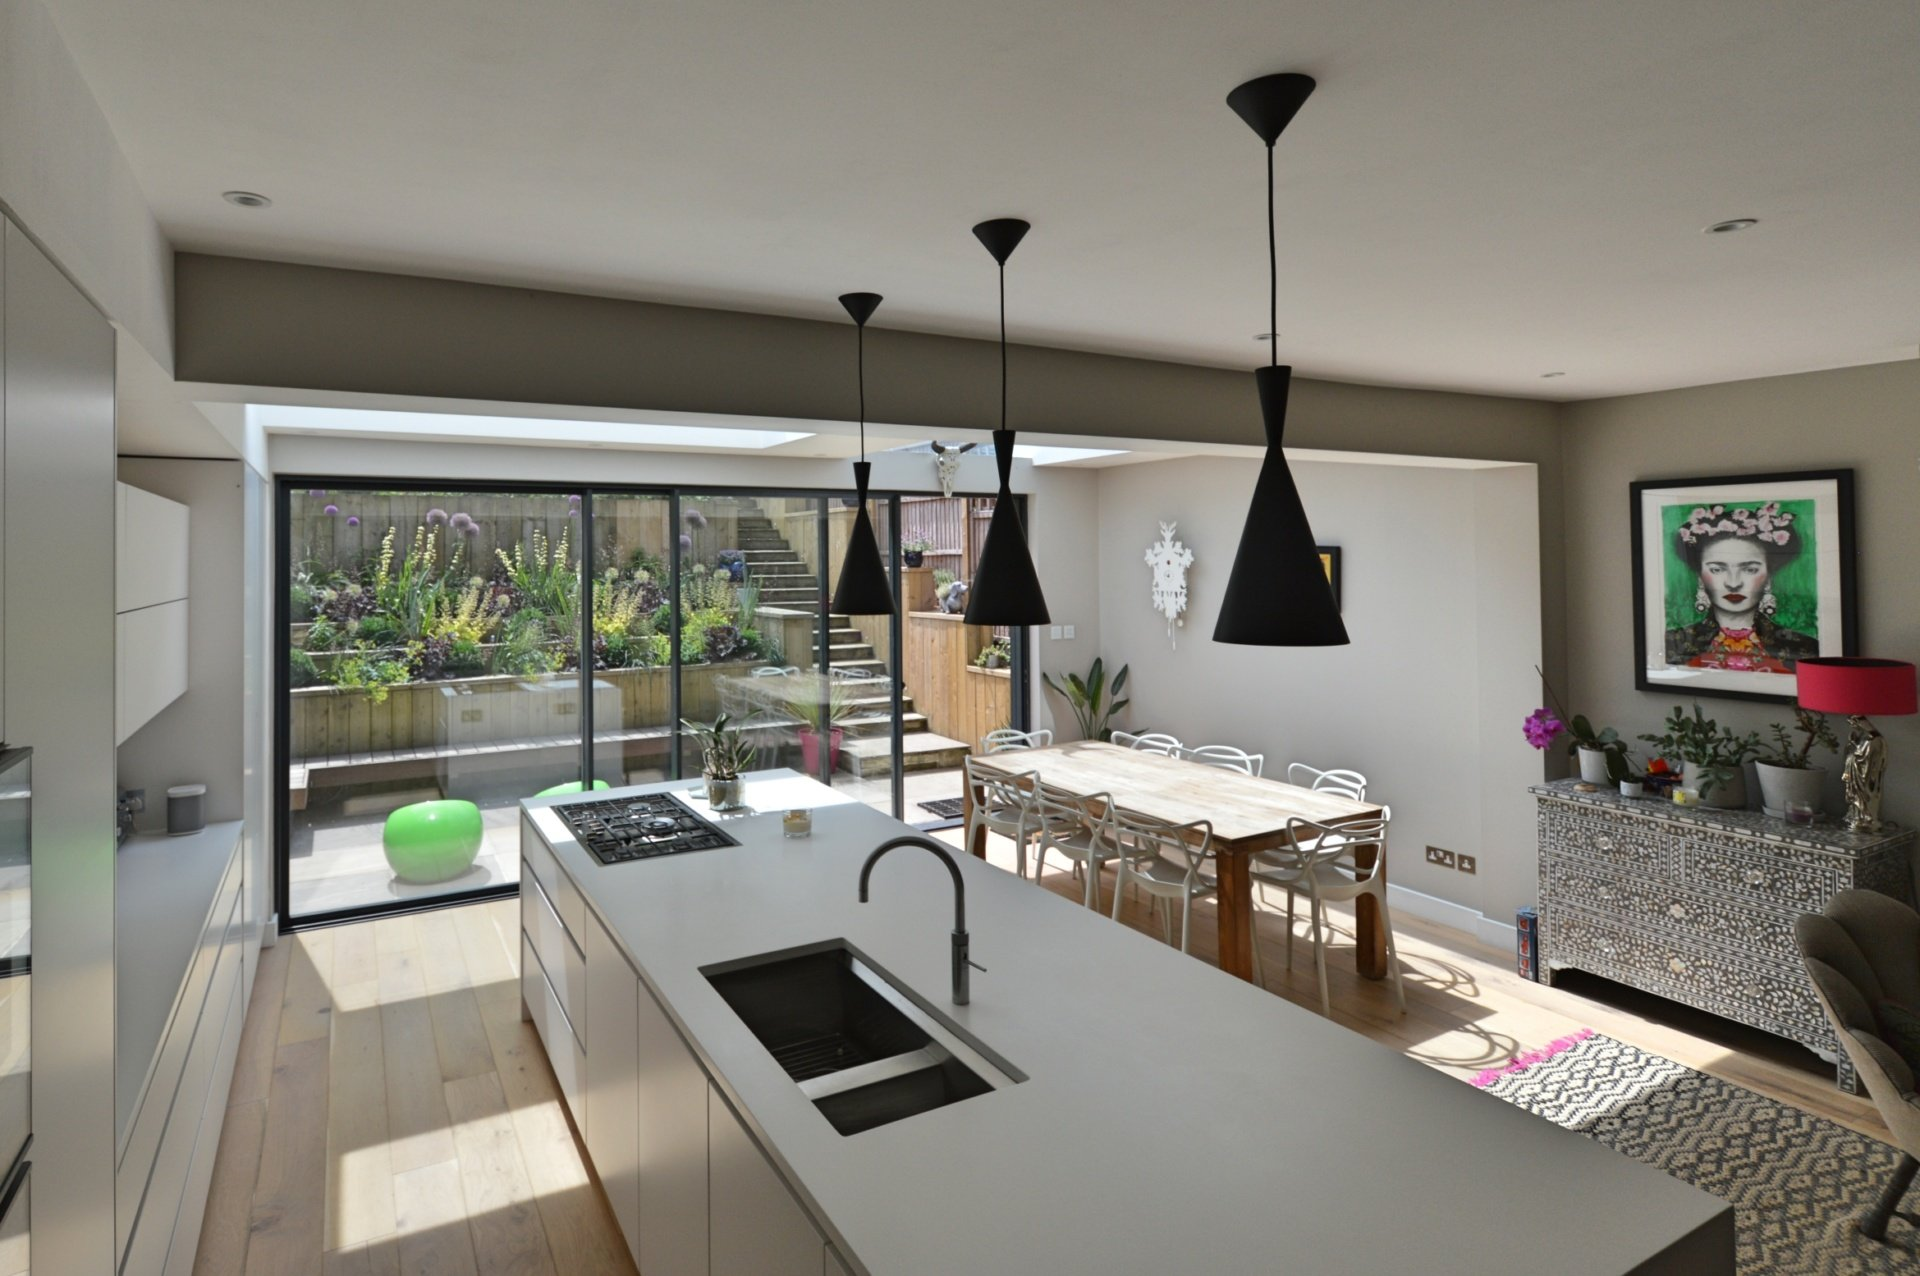 Architect designed rear house extension Highgate Haringey N6 – Kitchen and dining area 1 Highgate, Haringey N6 | Rear house extension